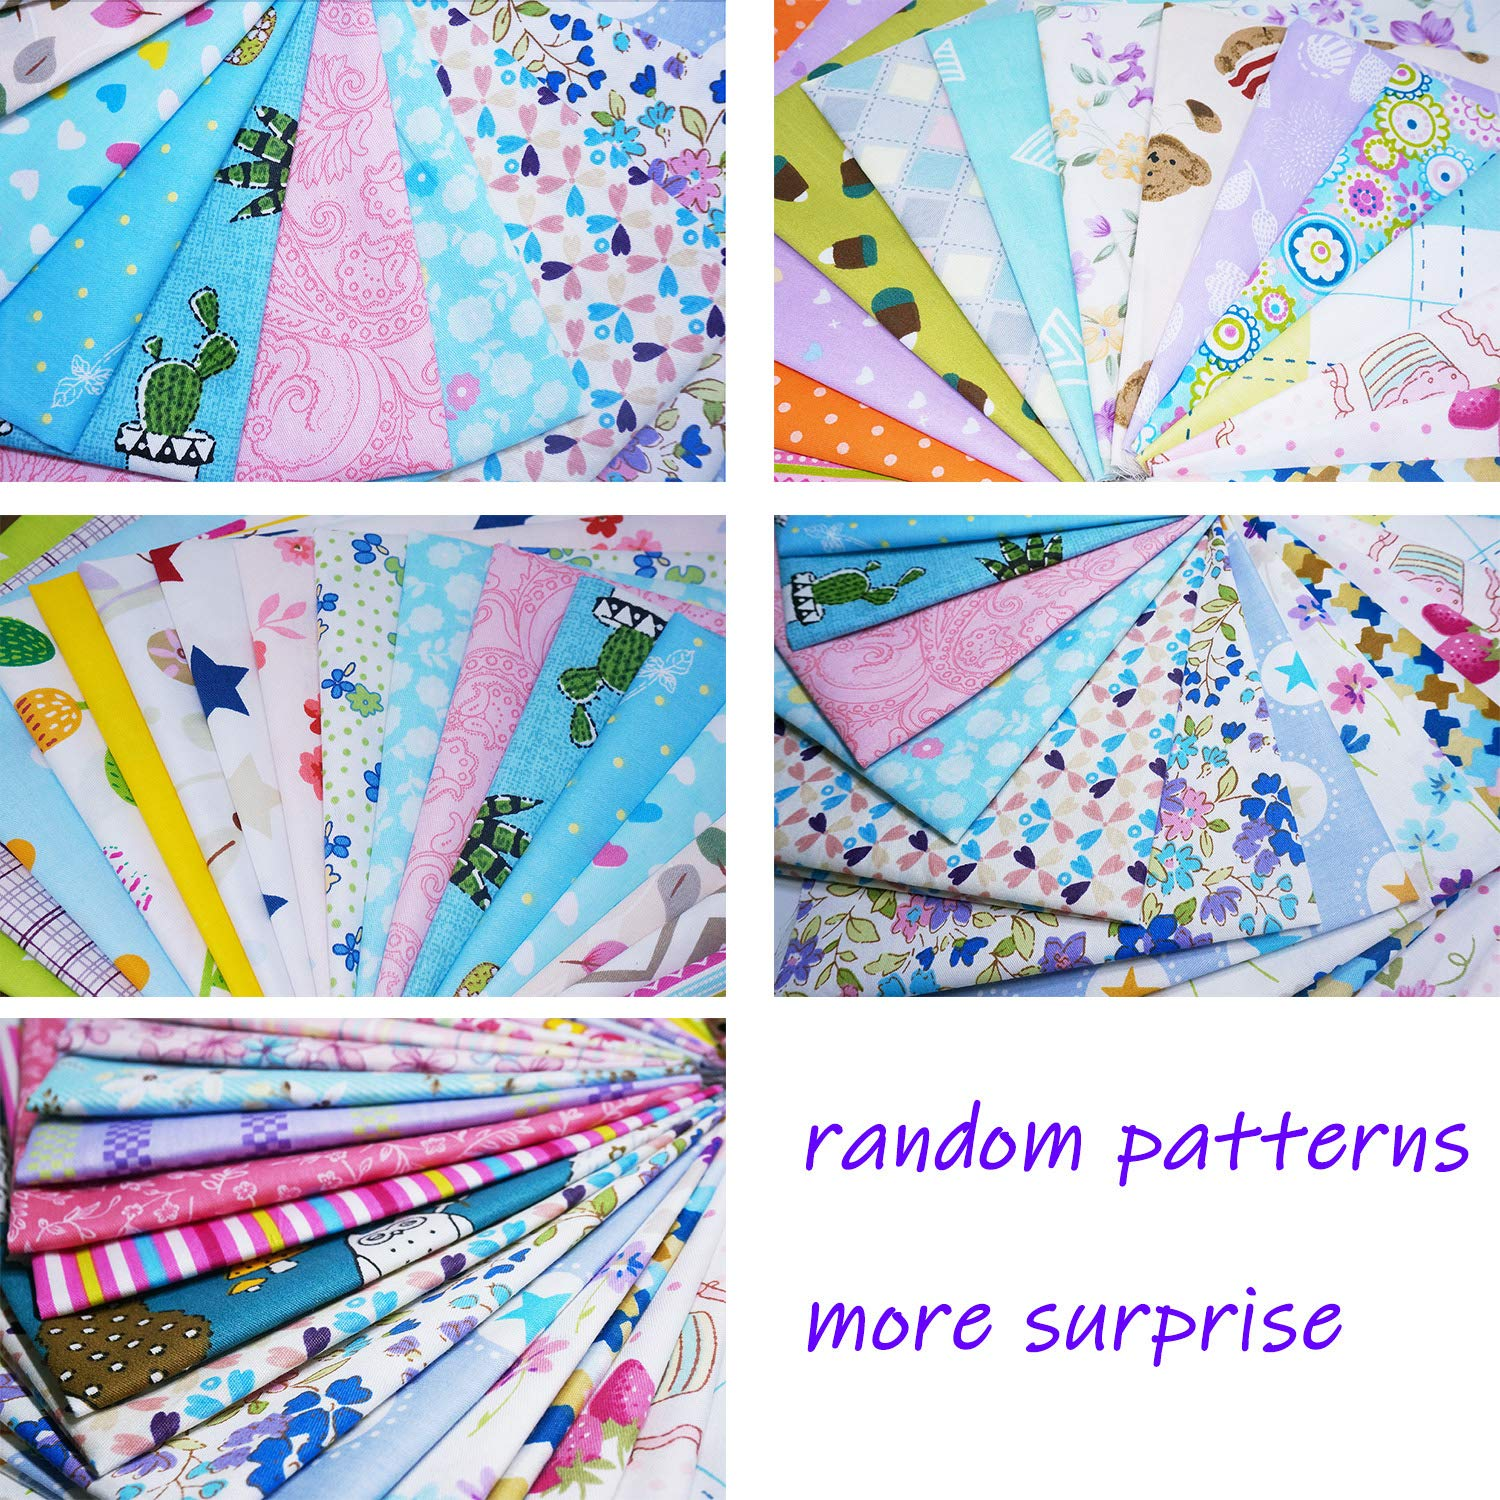 Quilting Fabric, Misscrafts 50pcs 12'' x 12'' (30cm x 30cm) Cotton Craft Fabric Bundle Patchwork Pre-Cut Quilt Squares for DIY Sewing Scrapbooking Quilting Dot Pattern by Misscrafts (Image #3)